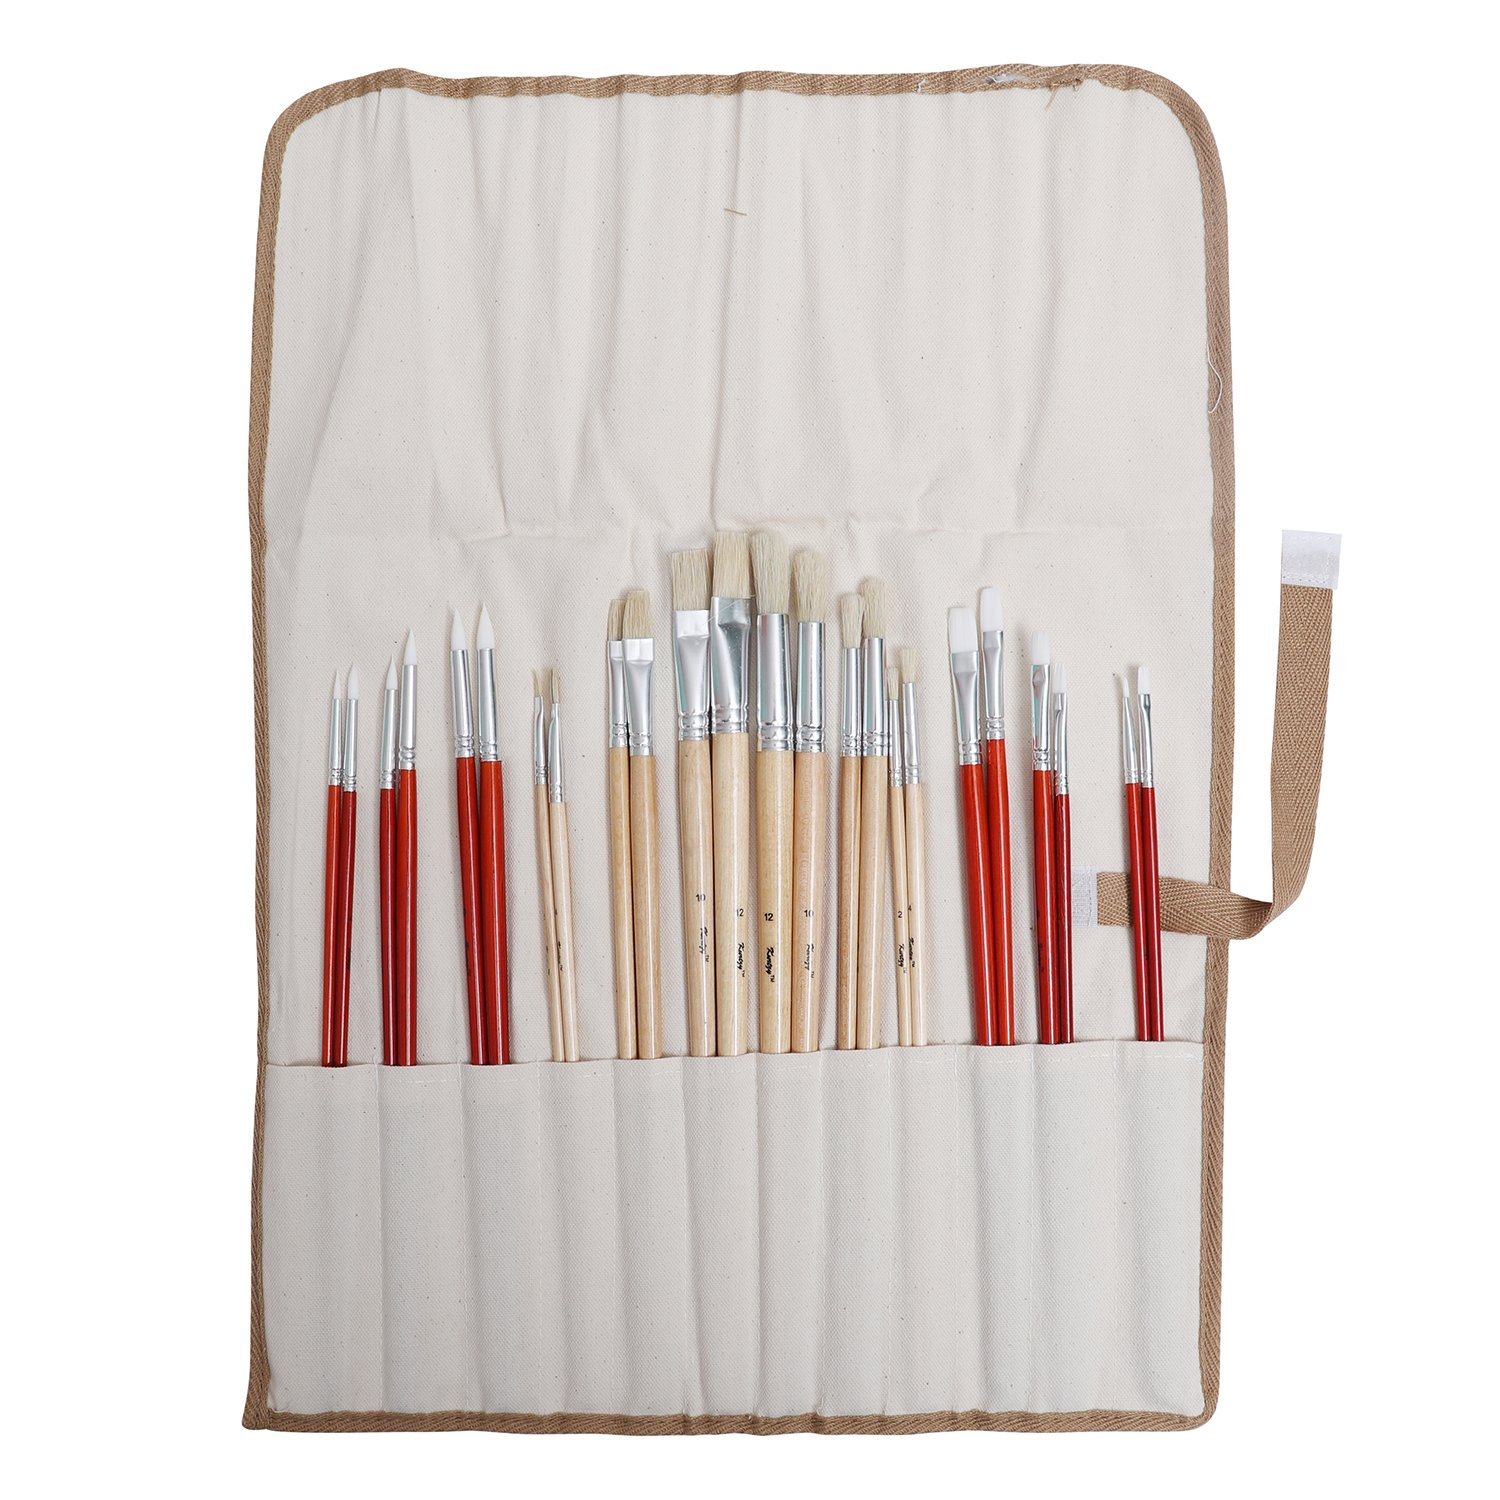 Kurtzy 24pcs Paint Brush Set with Case - Artist Paint Brushes for Watercolor, Oil, Acrylic Painting PB-6020-UK